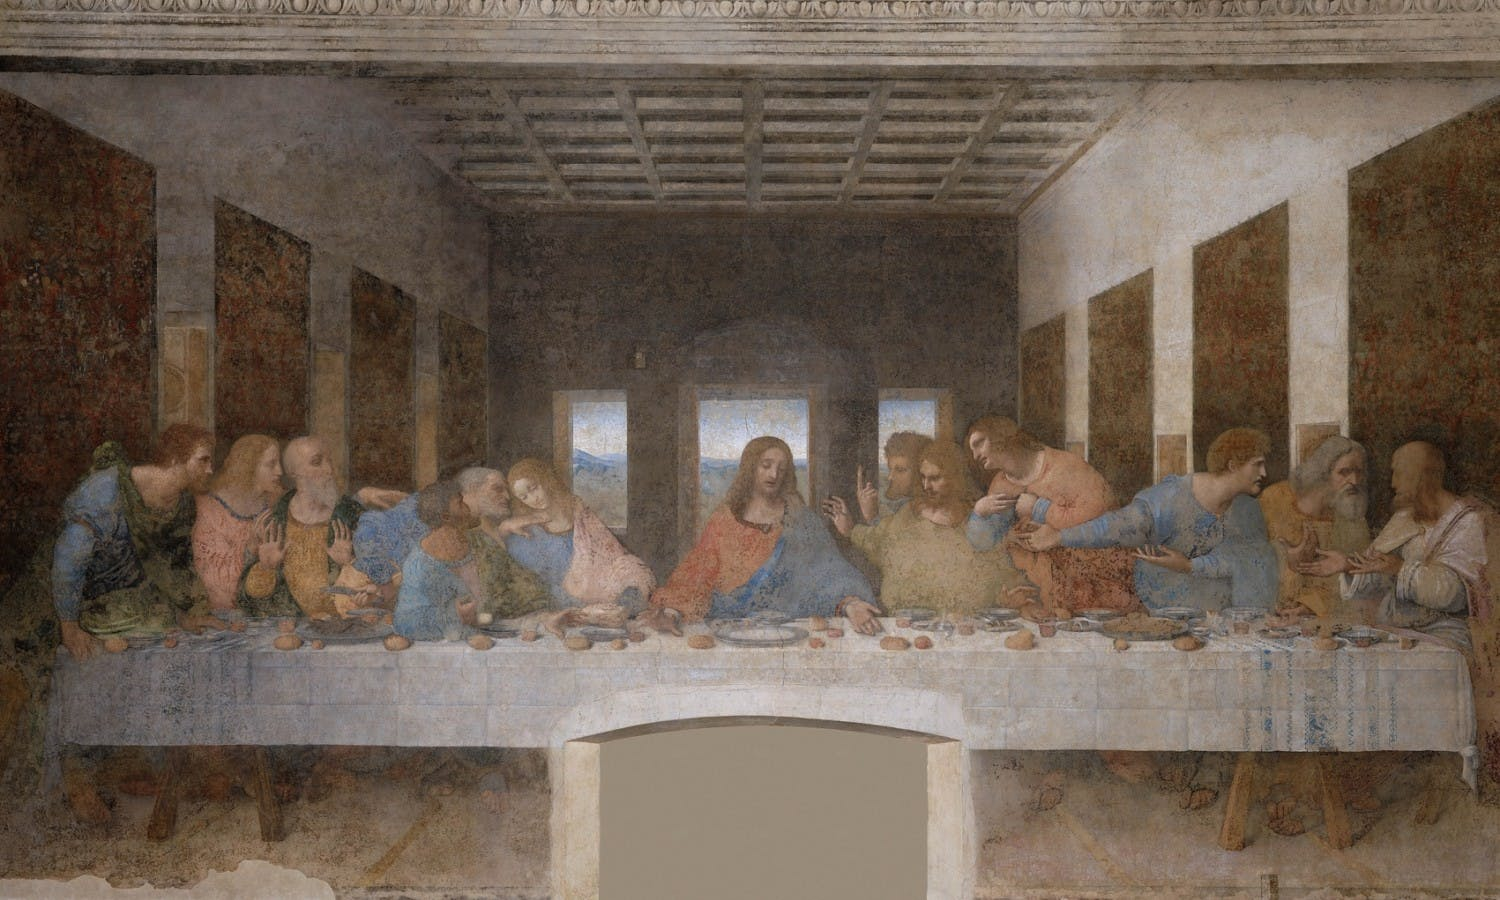 Da Vinci's Last Supper: skip-the-line tickets and guided tour